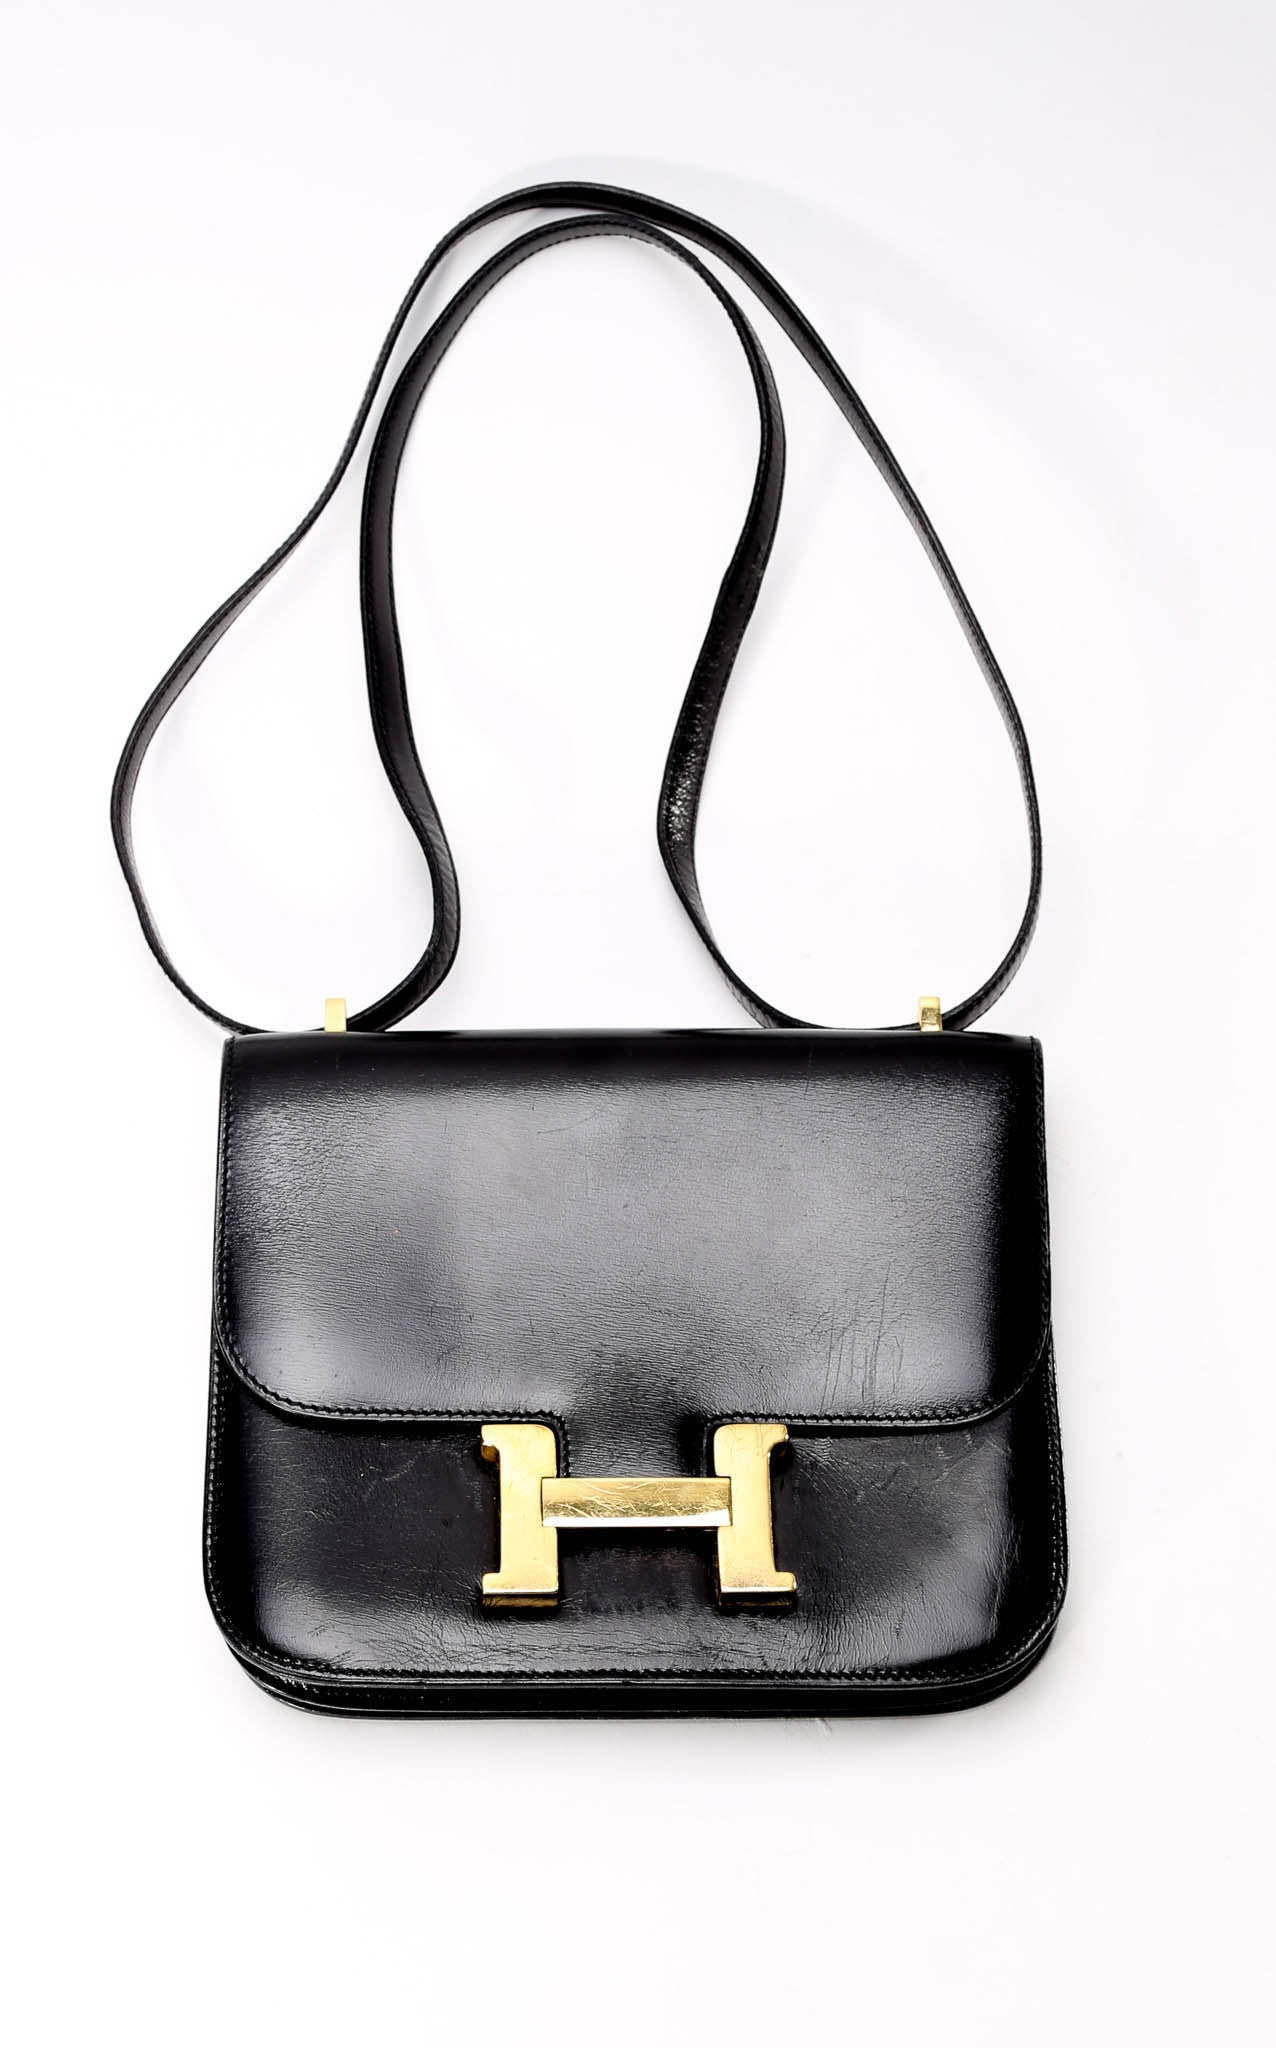 Hermes Constance Leather Mini Handbag